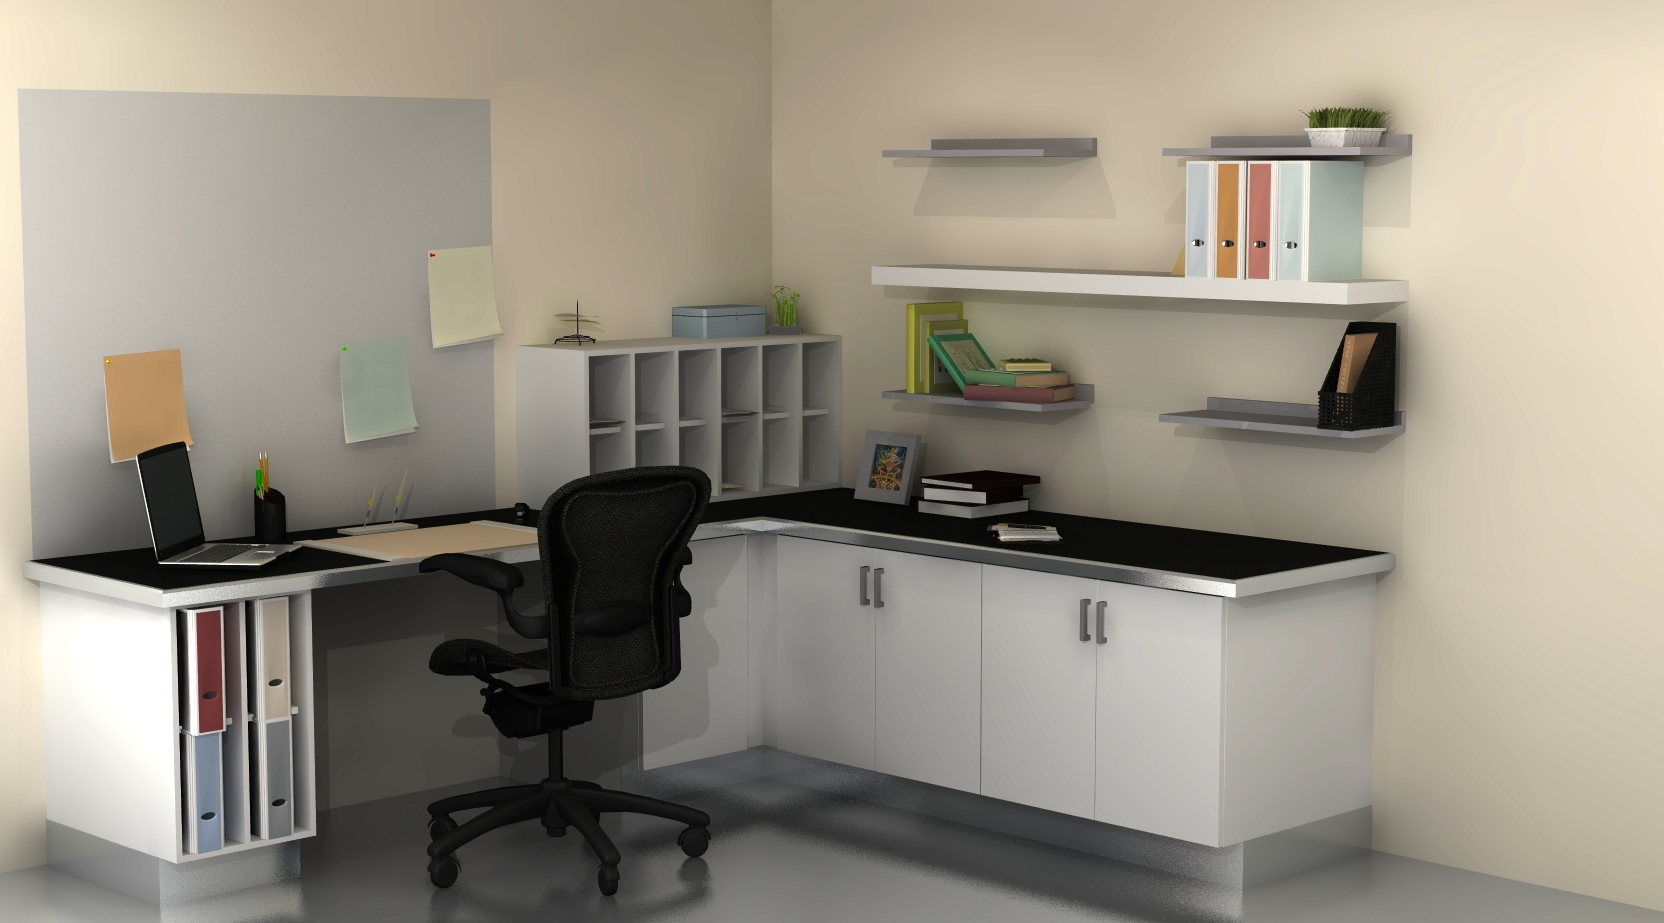 Ikea Office Cabinets. Ikea Office Cabinets A